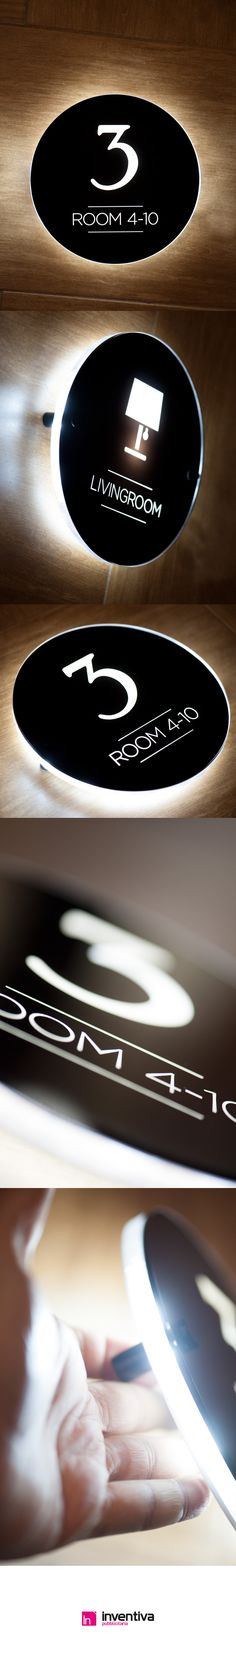 #signage #led #hotels Segnaletica luminosa hotels http://www.inventivashop.com/targhe-luminose-led-a-parete-25